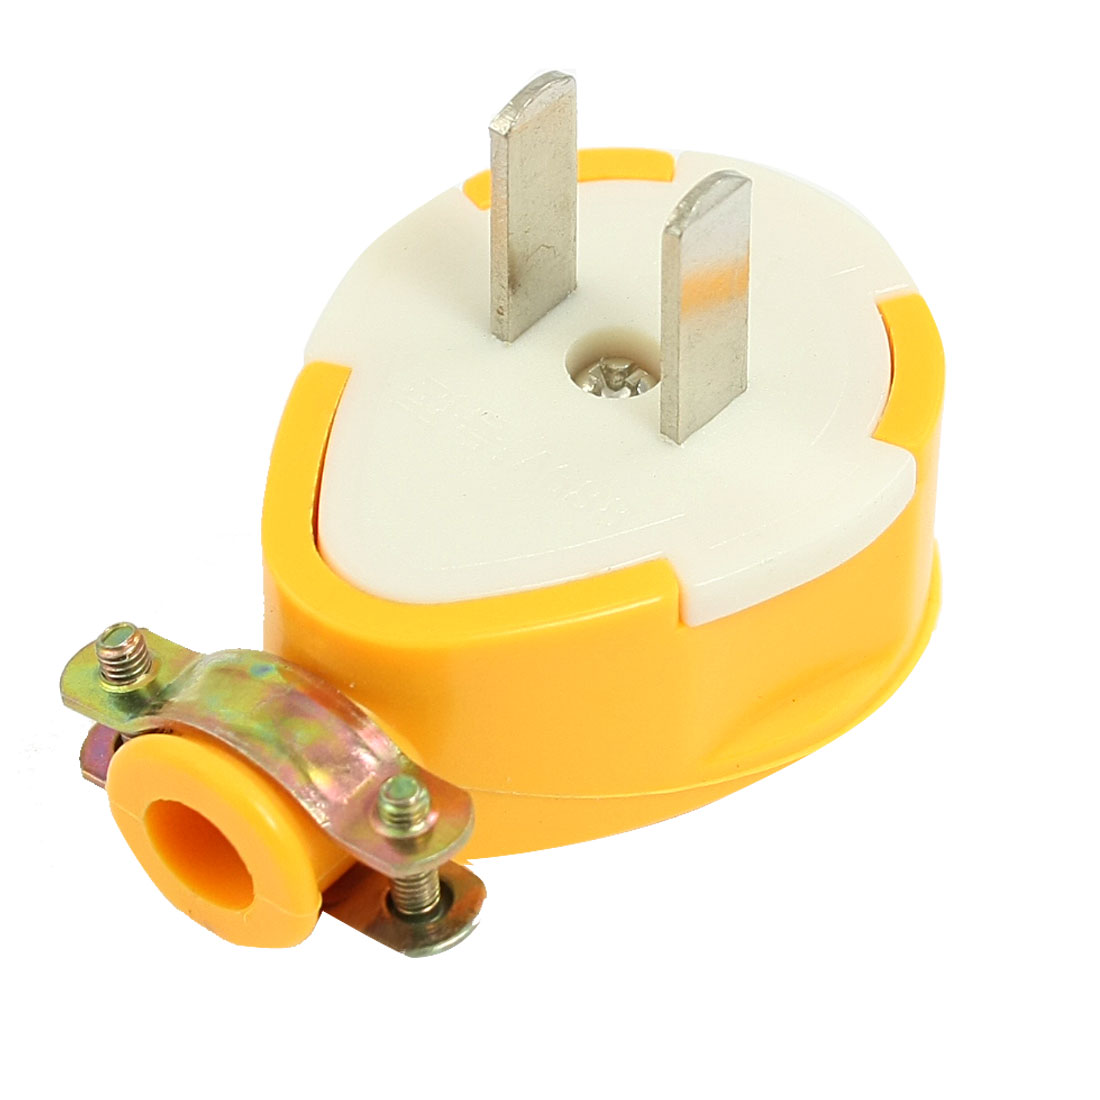 AC 250V 10A 2 Flat Pin Yellow Water Resistant US Plug Adapter